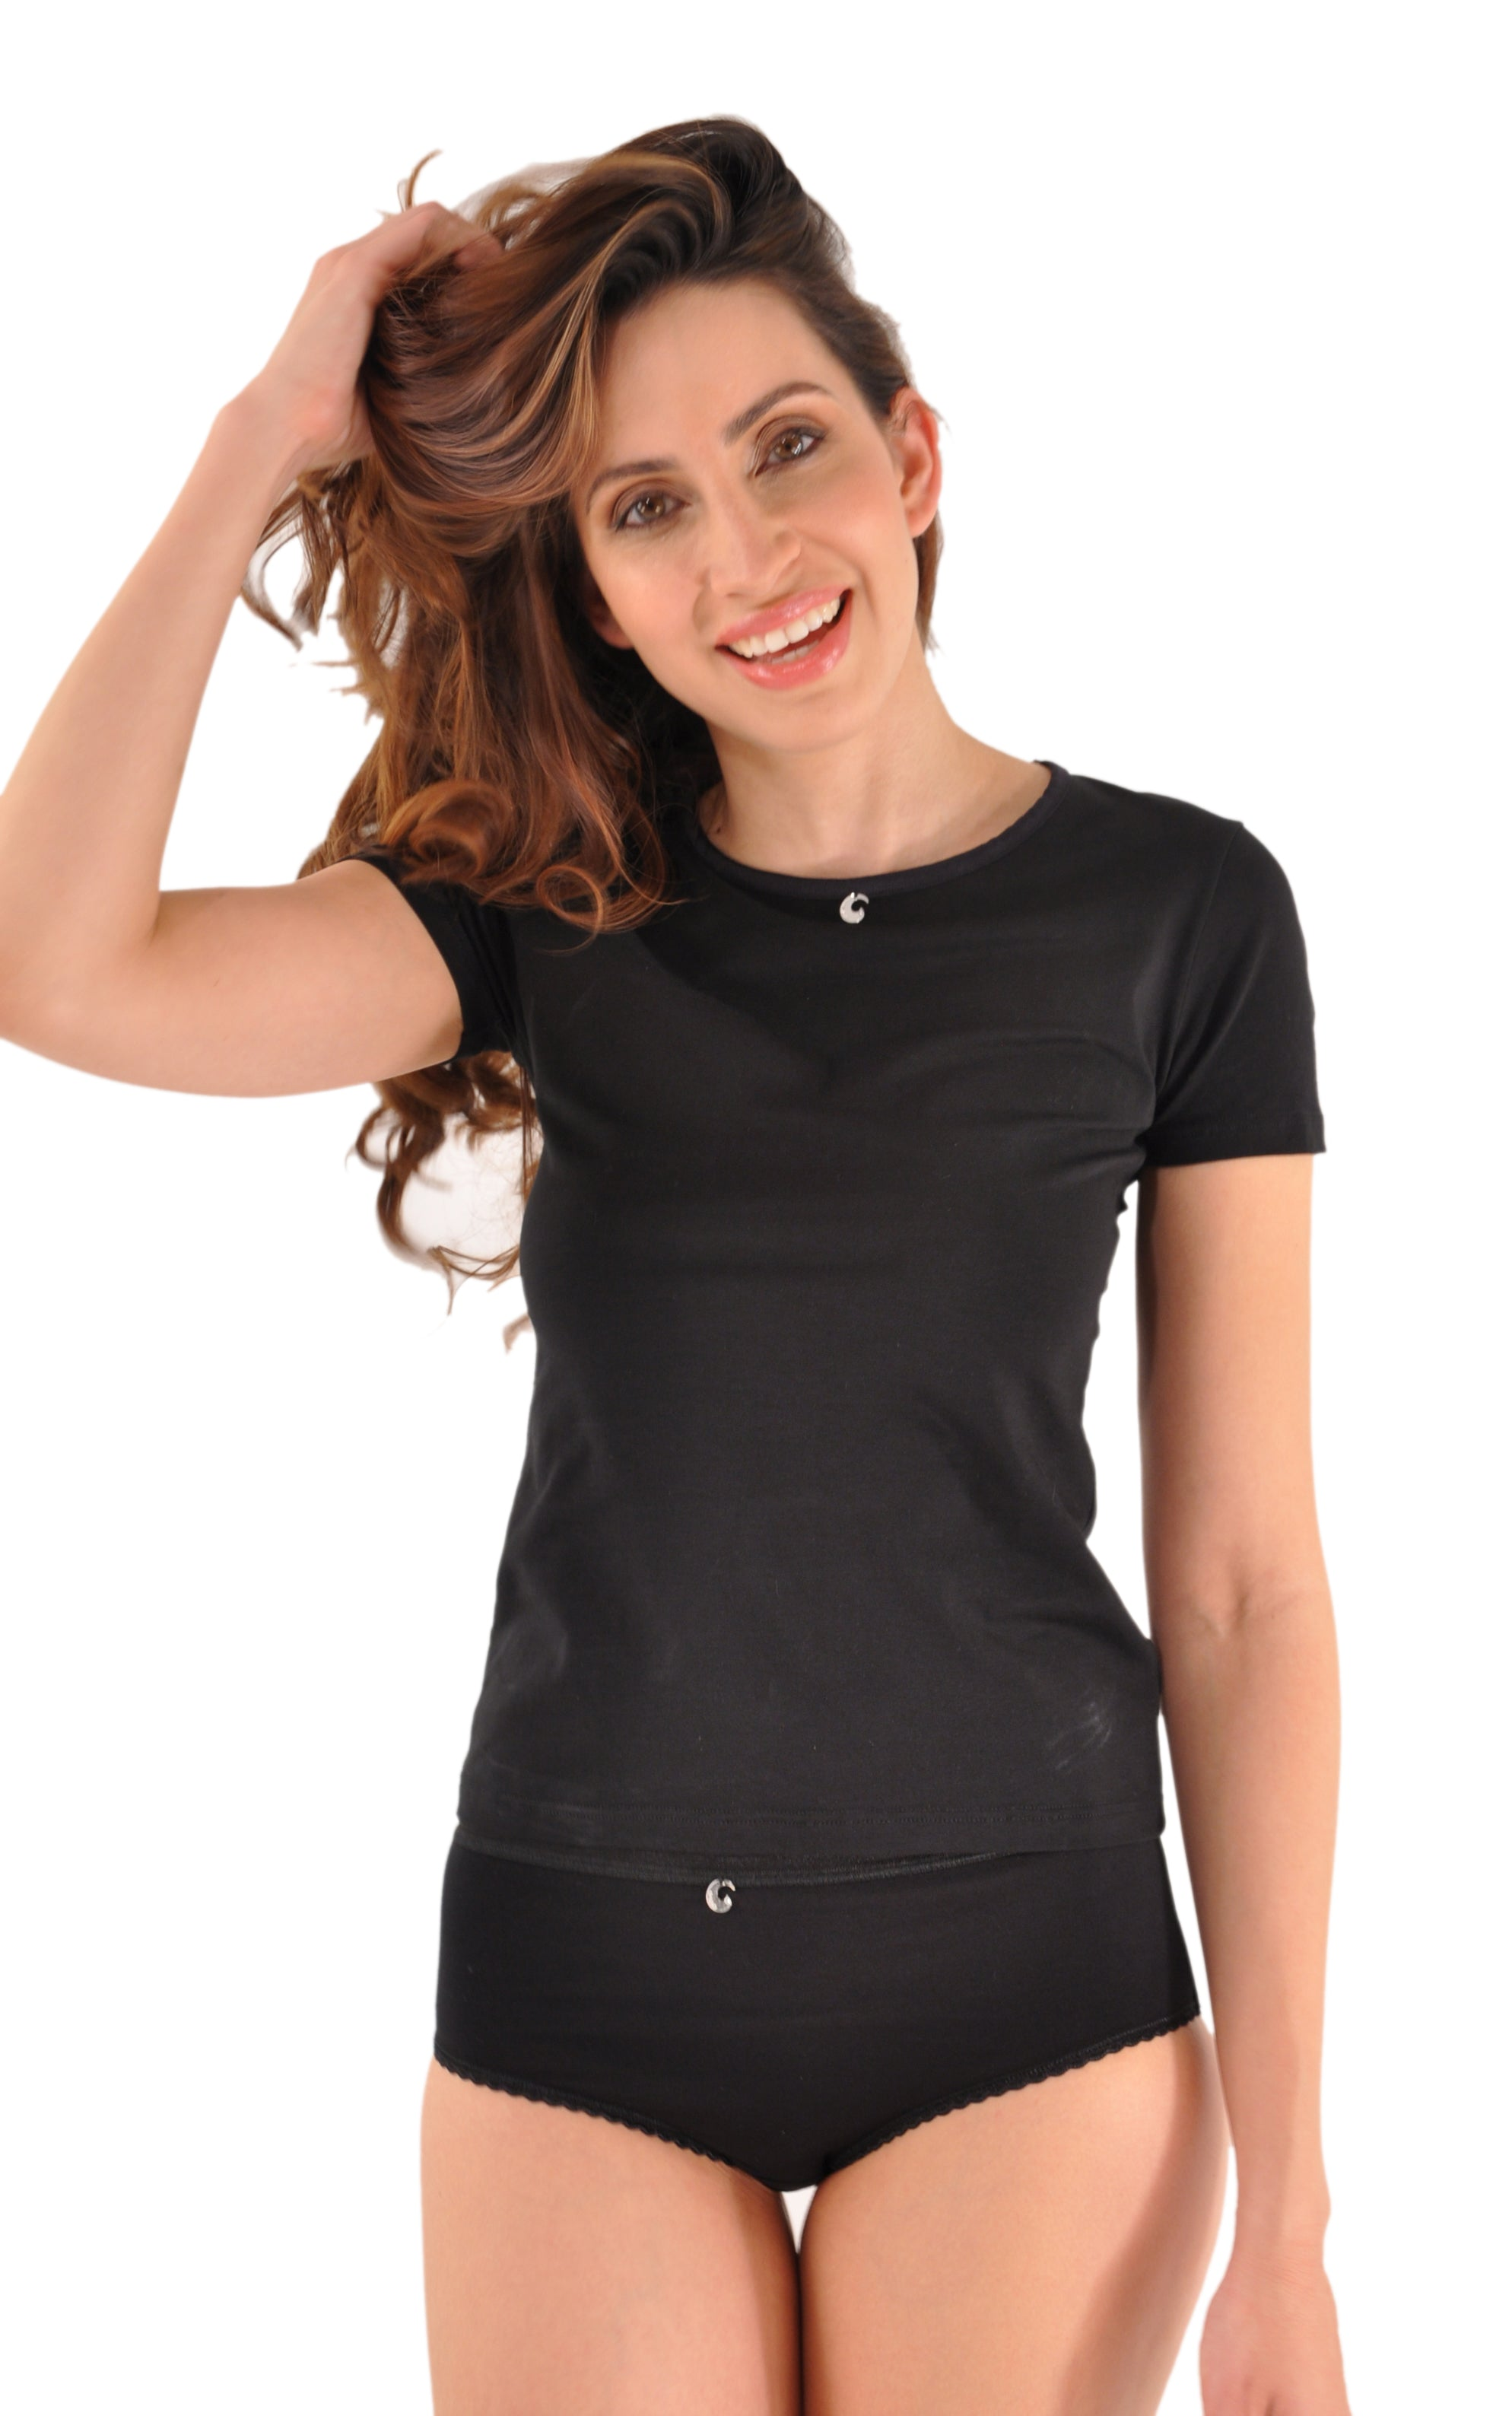 Kabbaz-Kelly Pure Elegance Luxury T-shirt